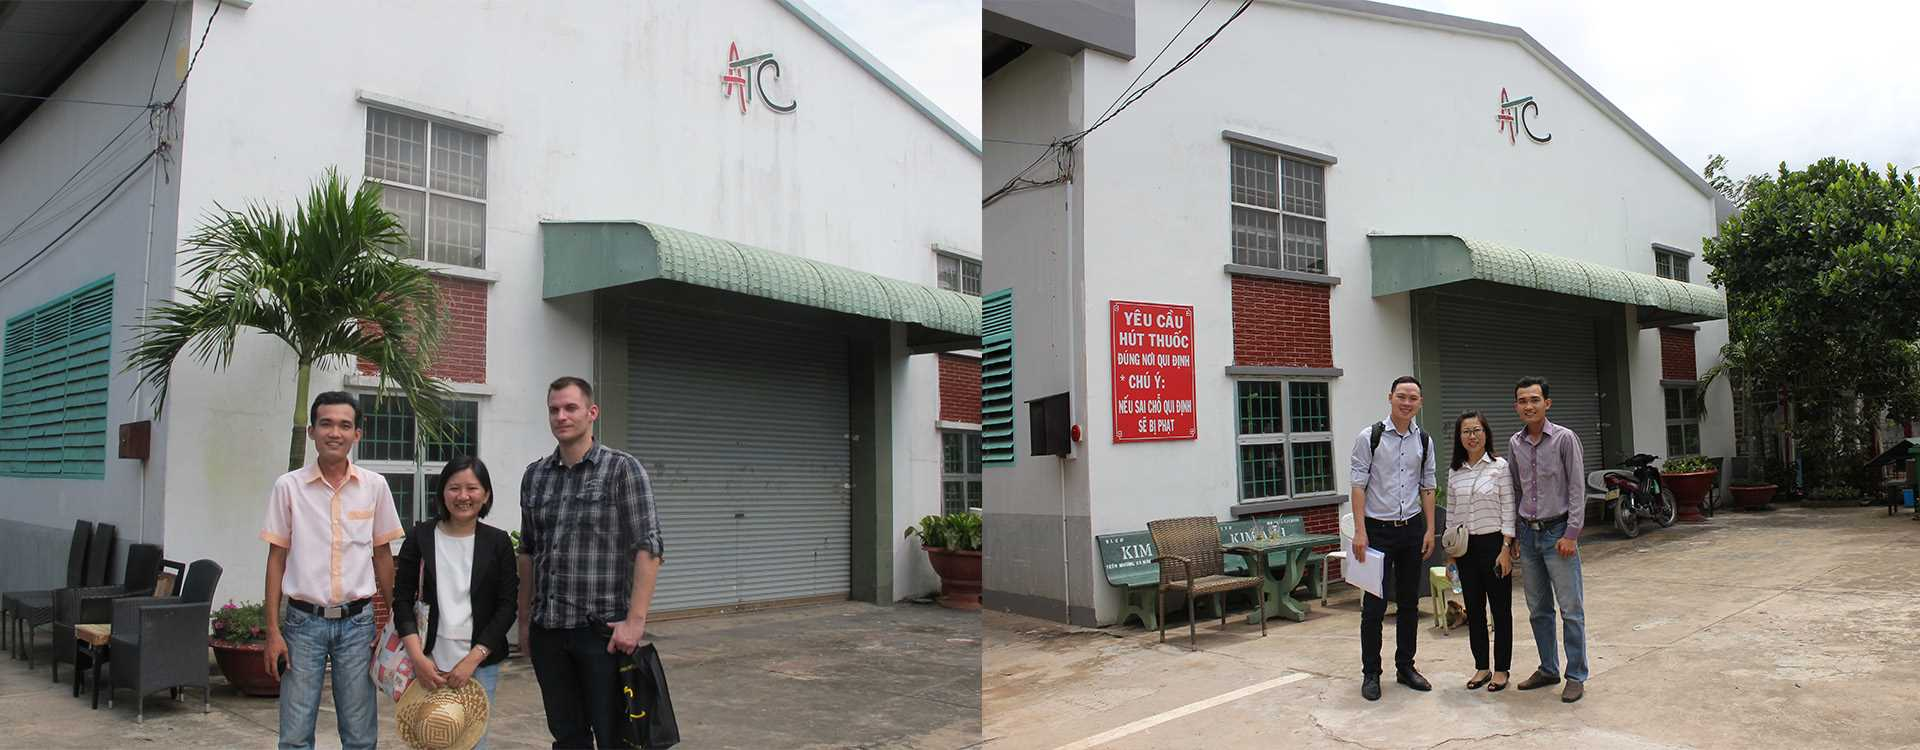 ATC Vietnam Furniture Factory Client Visit